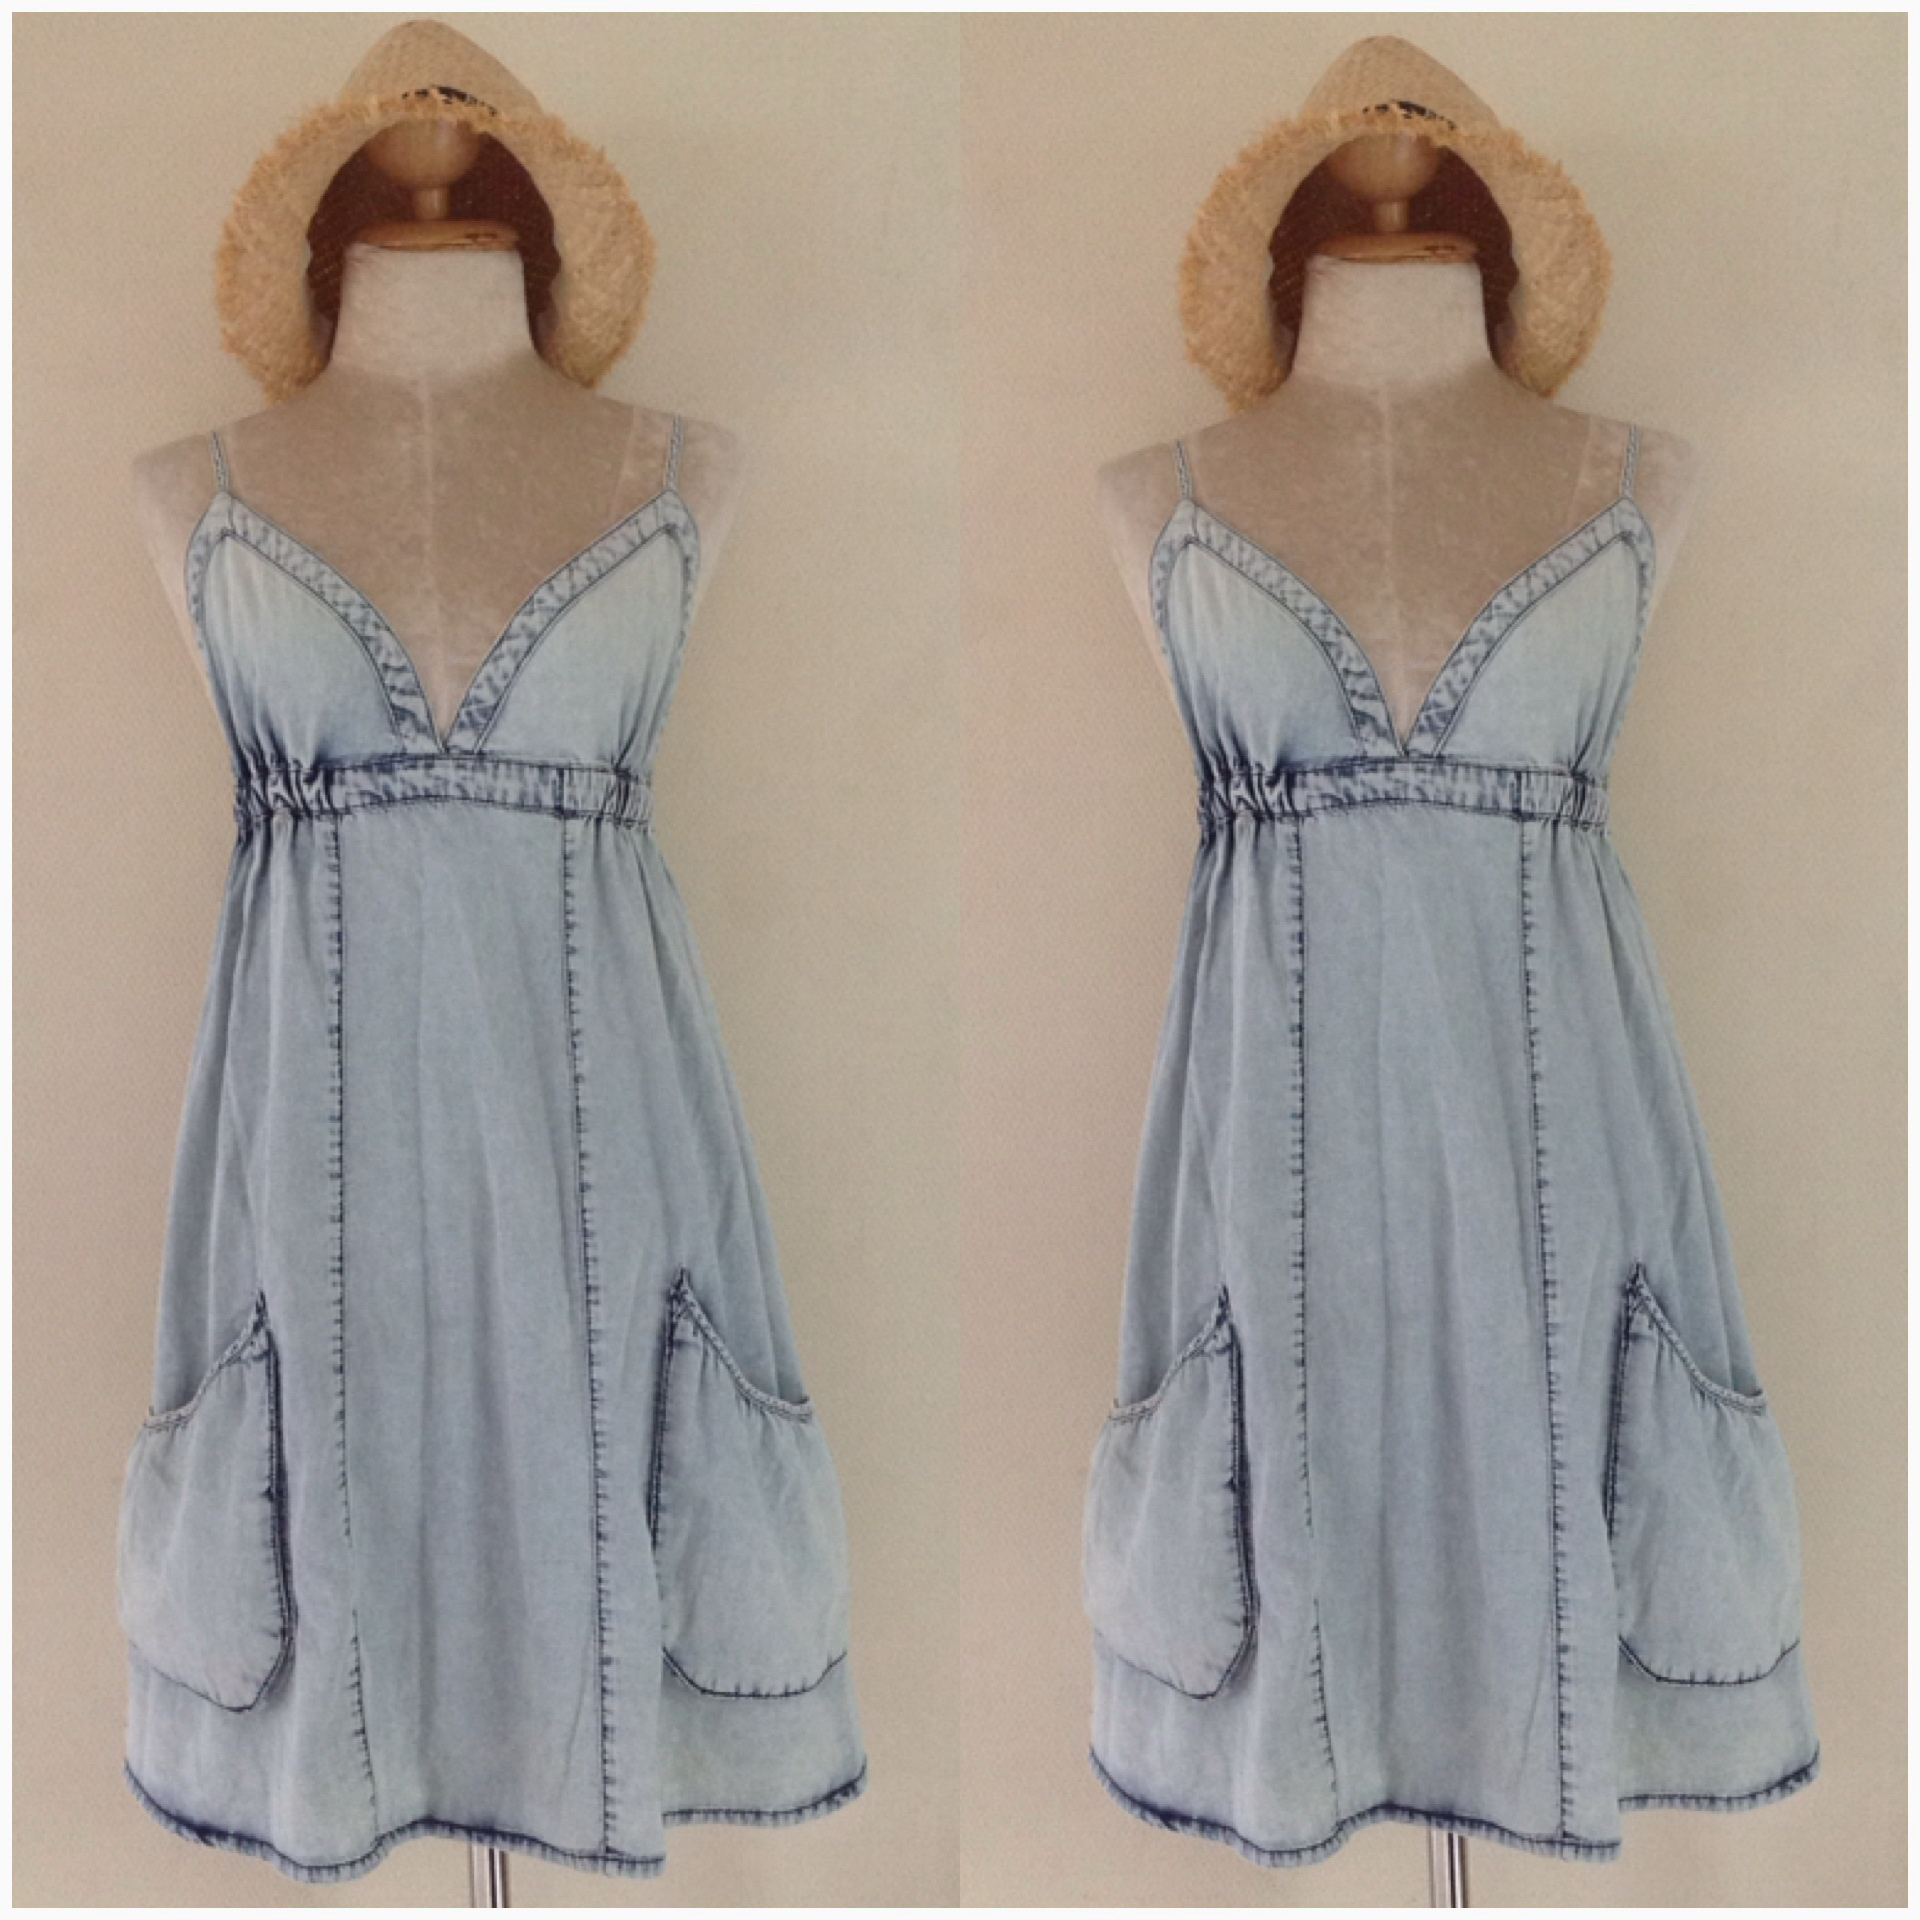 Miss selffridge Denim Style Sundress Size Uk12